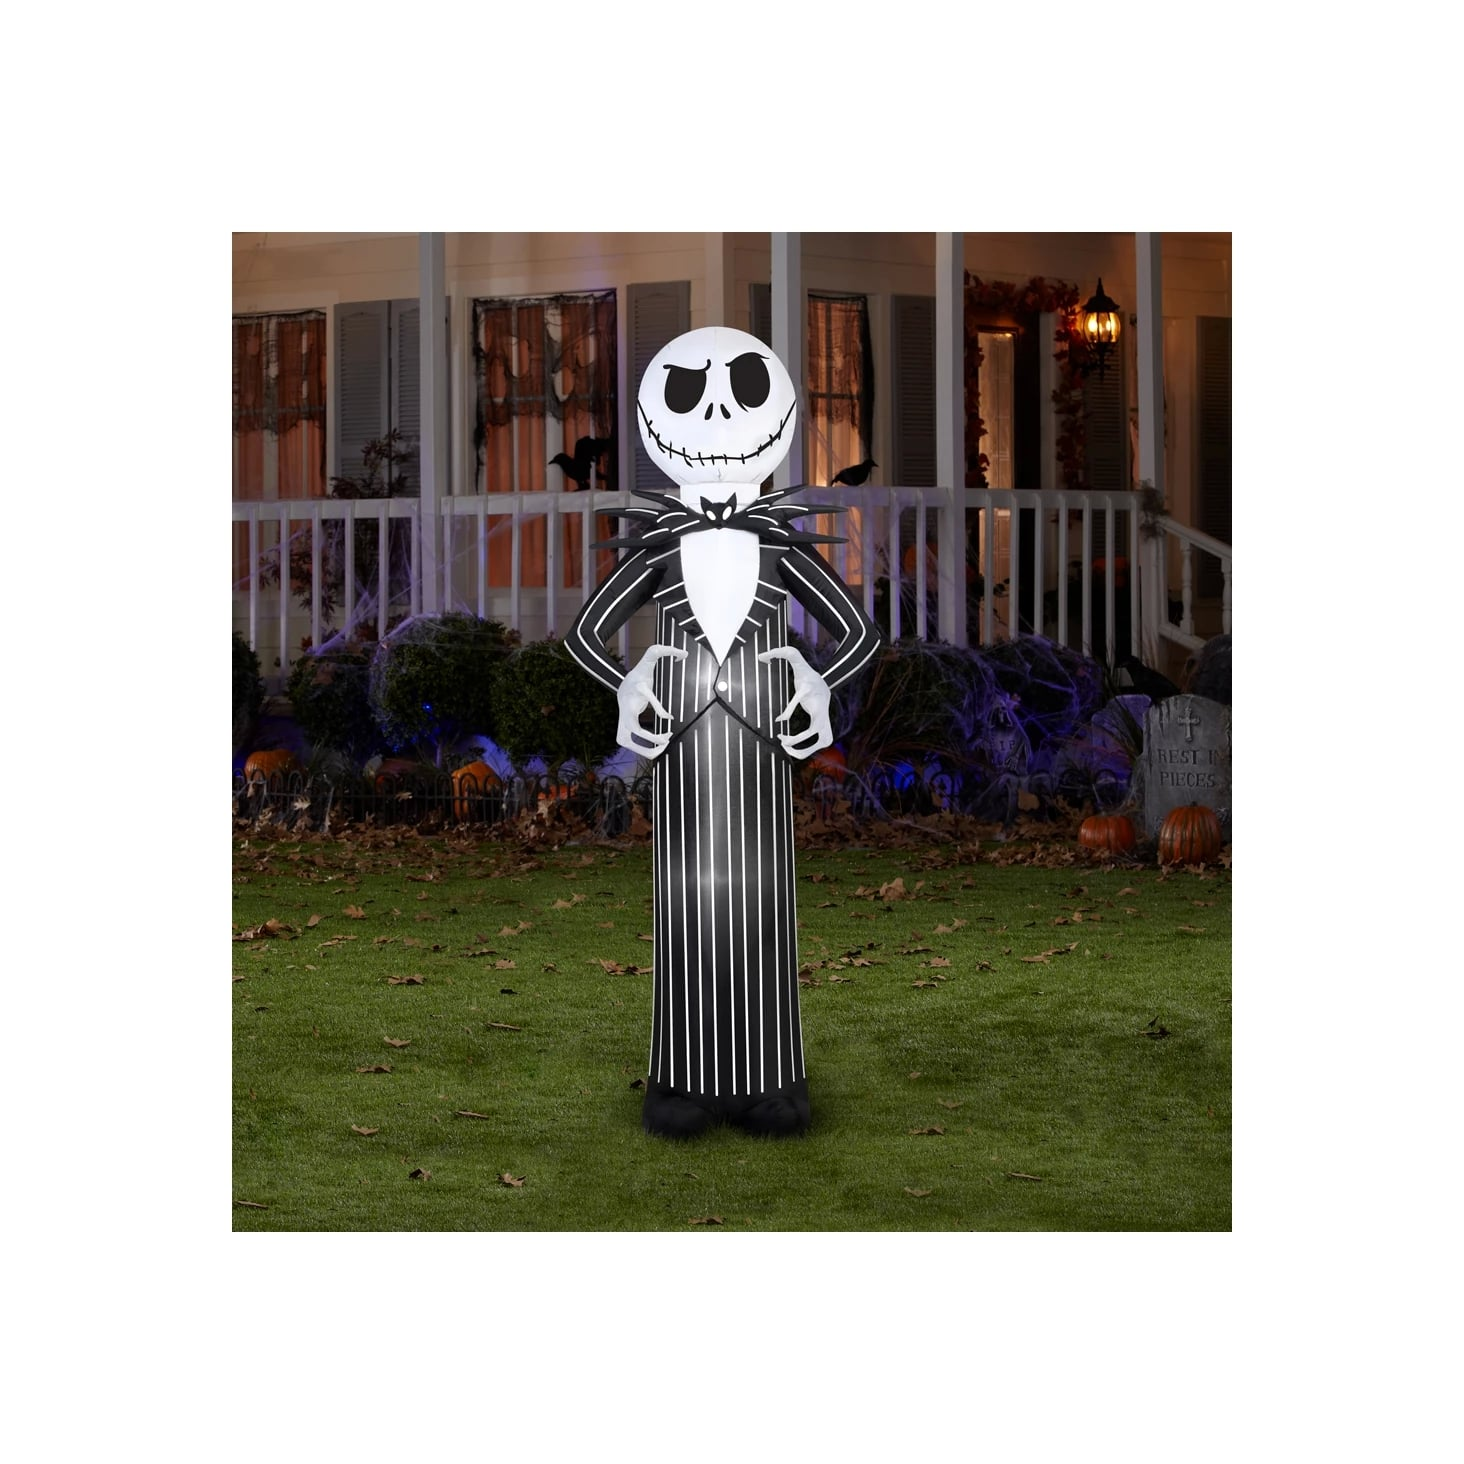 Disney Nightmare Before Christmas Jack Skellington Inflatable Halloween Decoration Deck The Halls With Horror Target S Outdoor Halloween Decor Is Frightfully Delightful Popsugar Home Photo 79